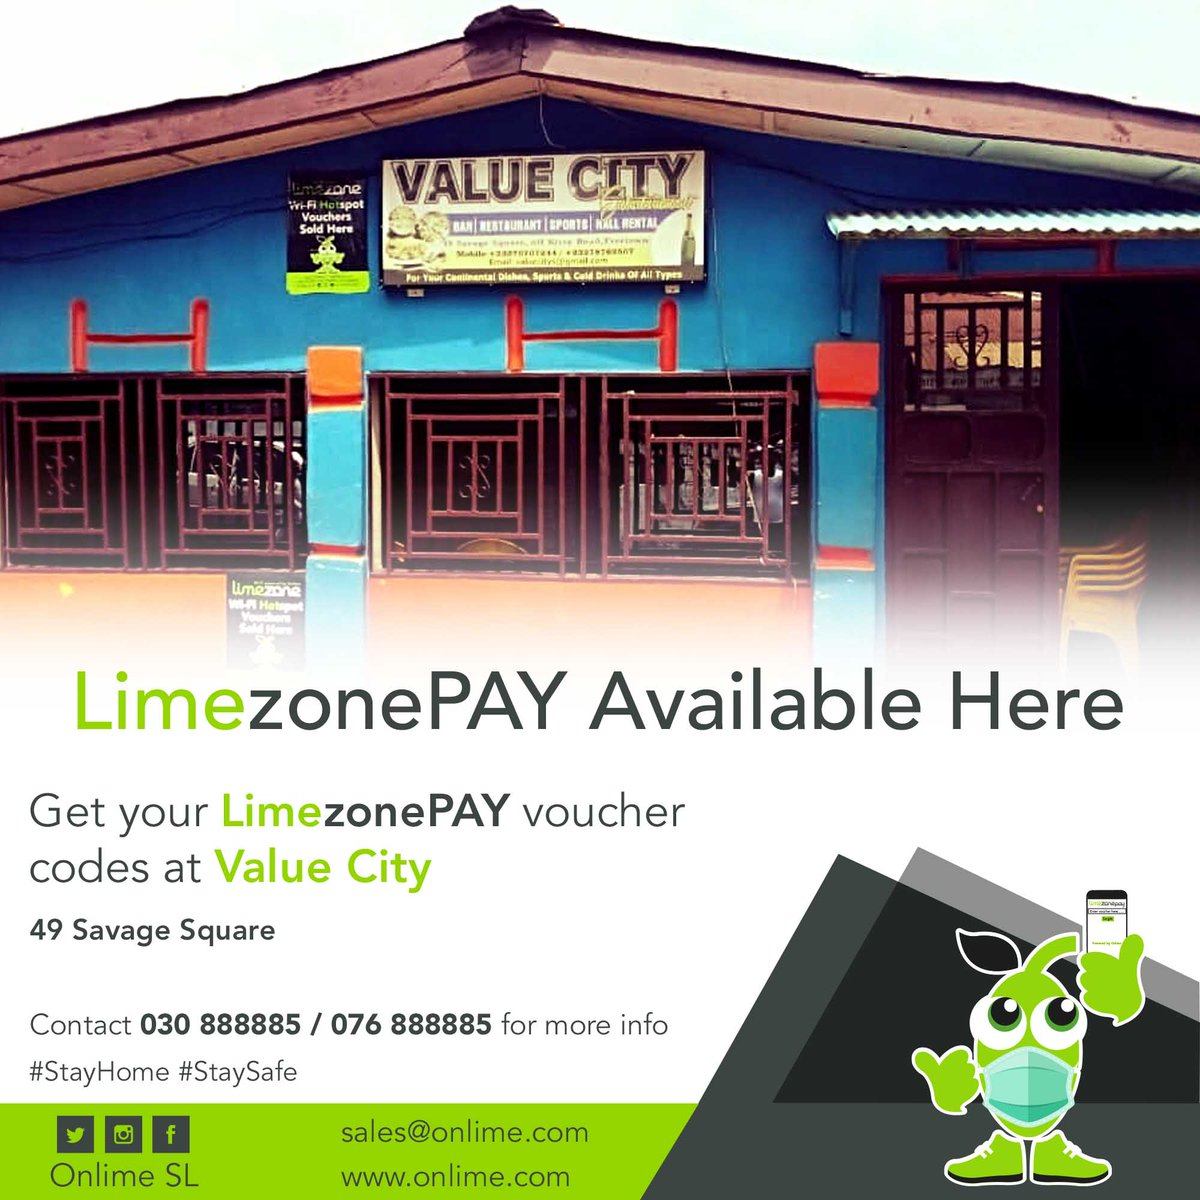 Get your LimezonePAY Voucher codes from Value City 49 Savage Square. contact 030 888885/076888885 for more info. #StayConnected #StaySafe #LimezonePAY https://t.co/oSPZz1y1Rp